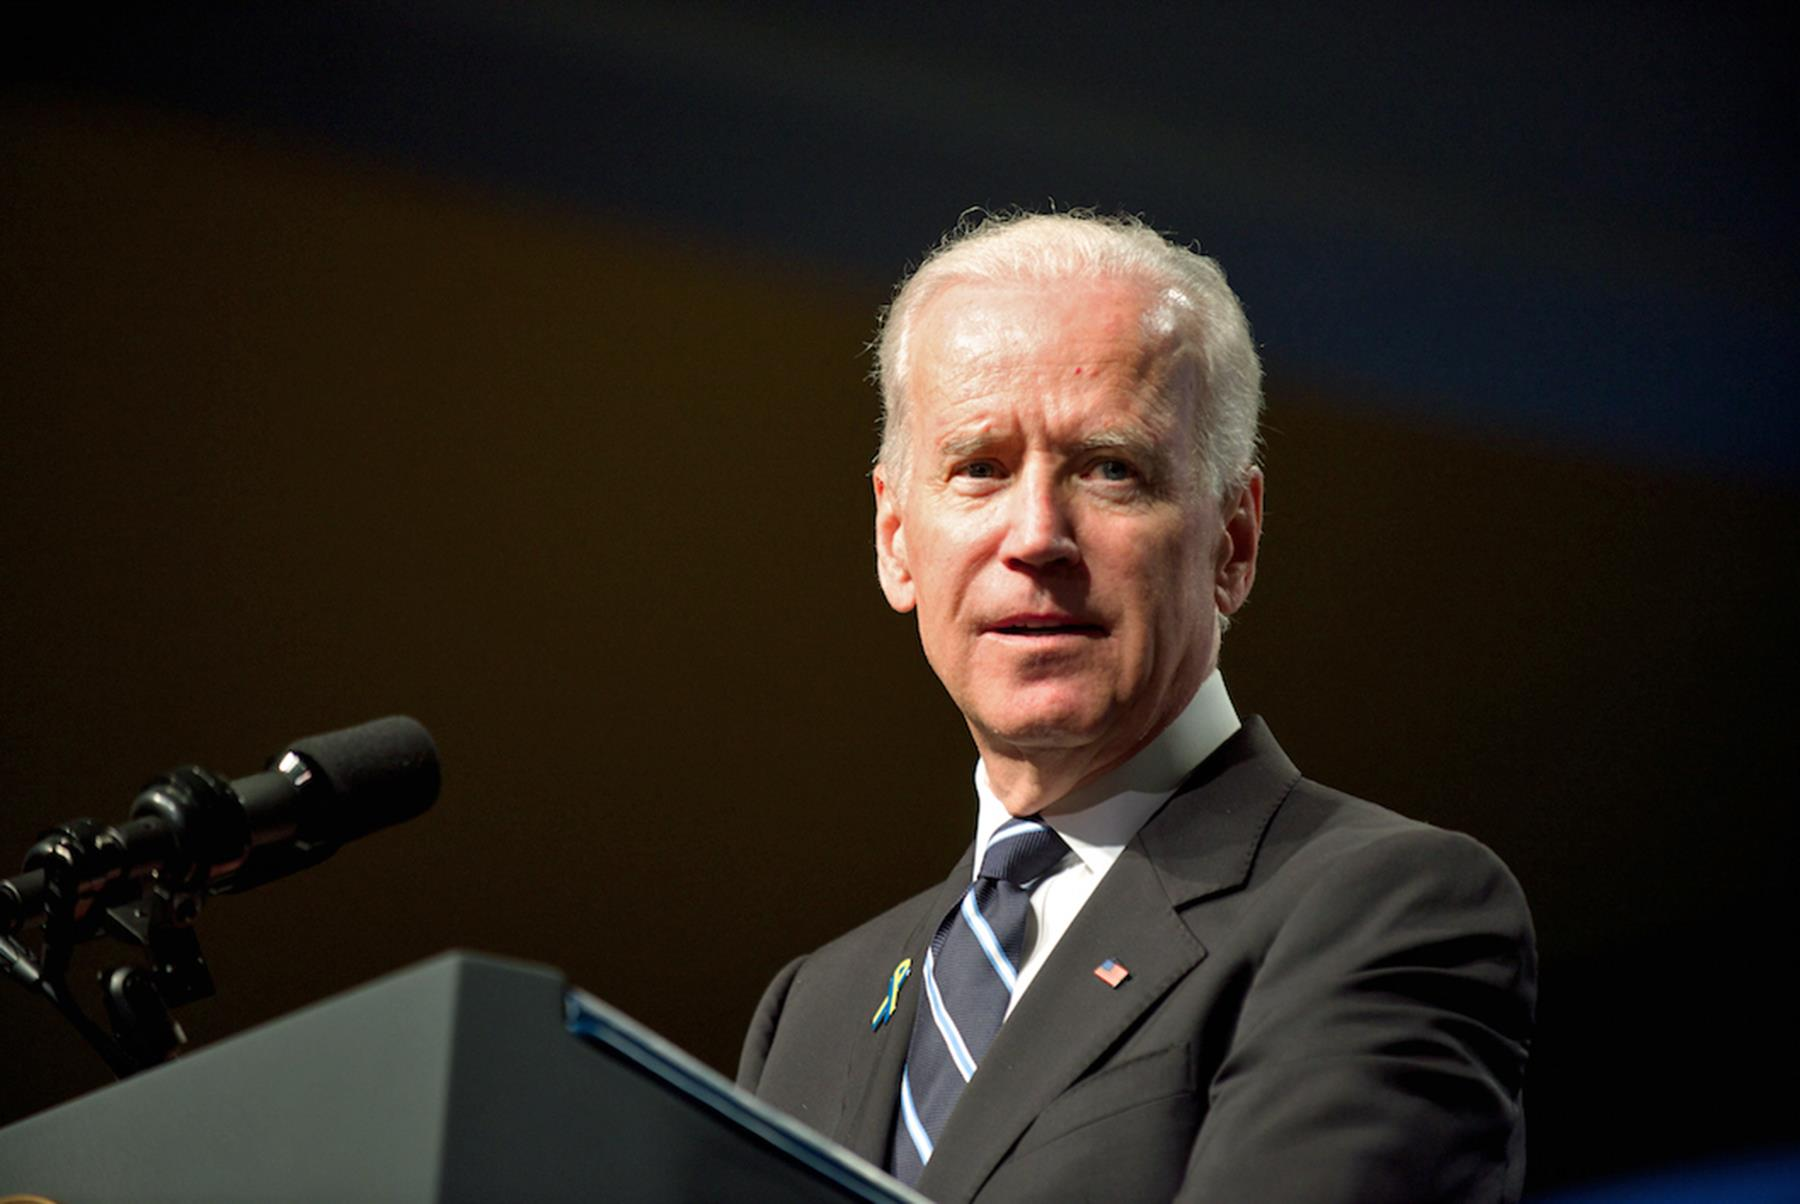 Vice President Joe Biden speaks at a tribute for victims of the Boston Marathon bombings.